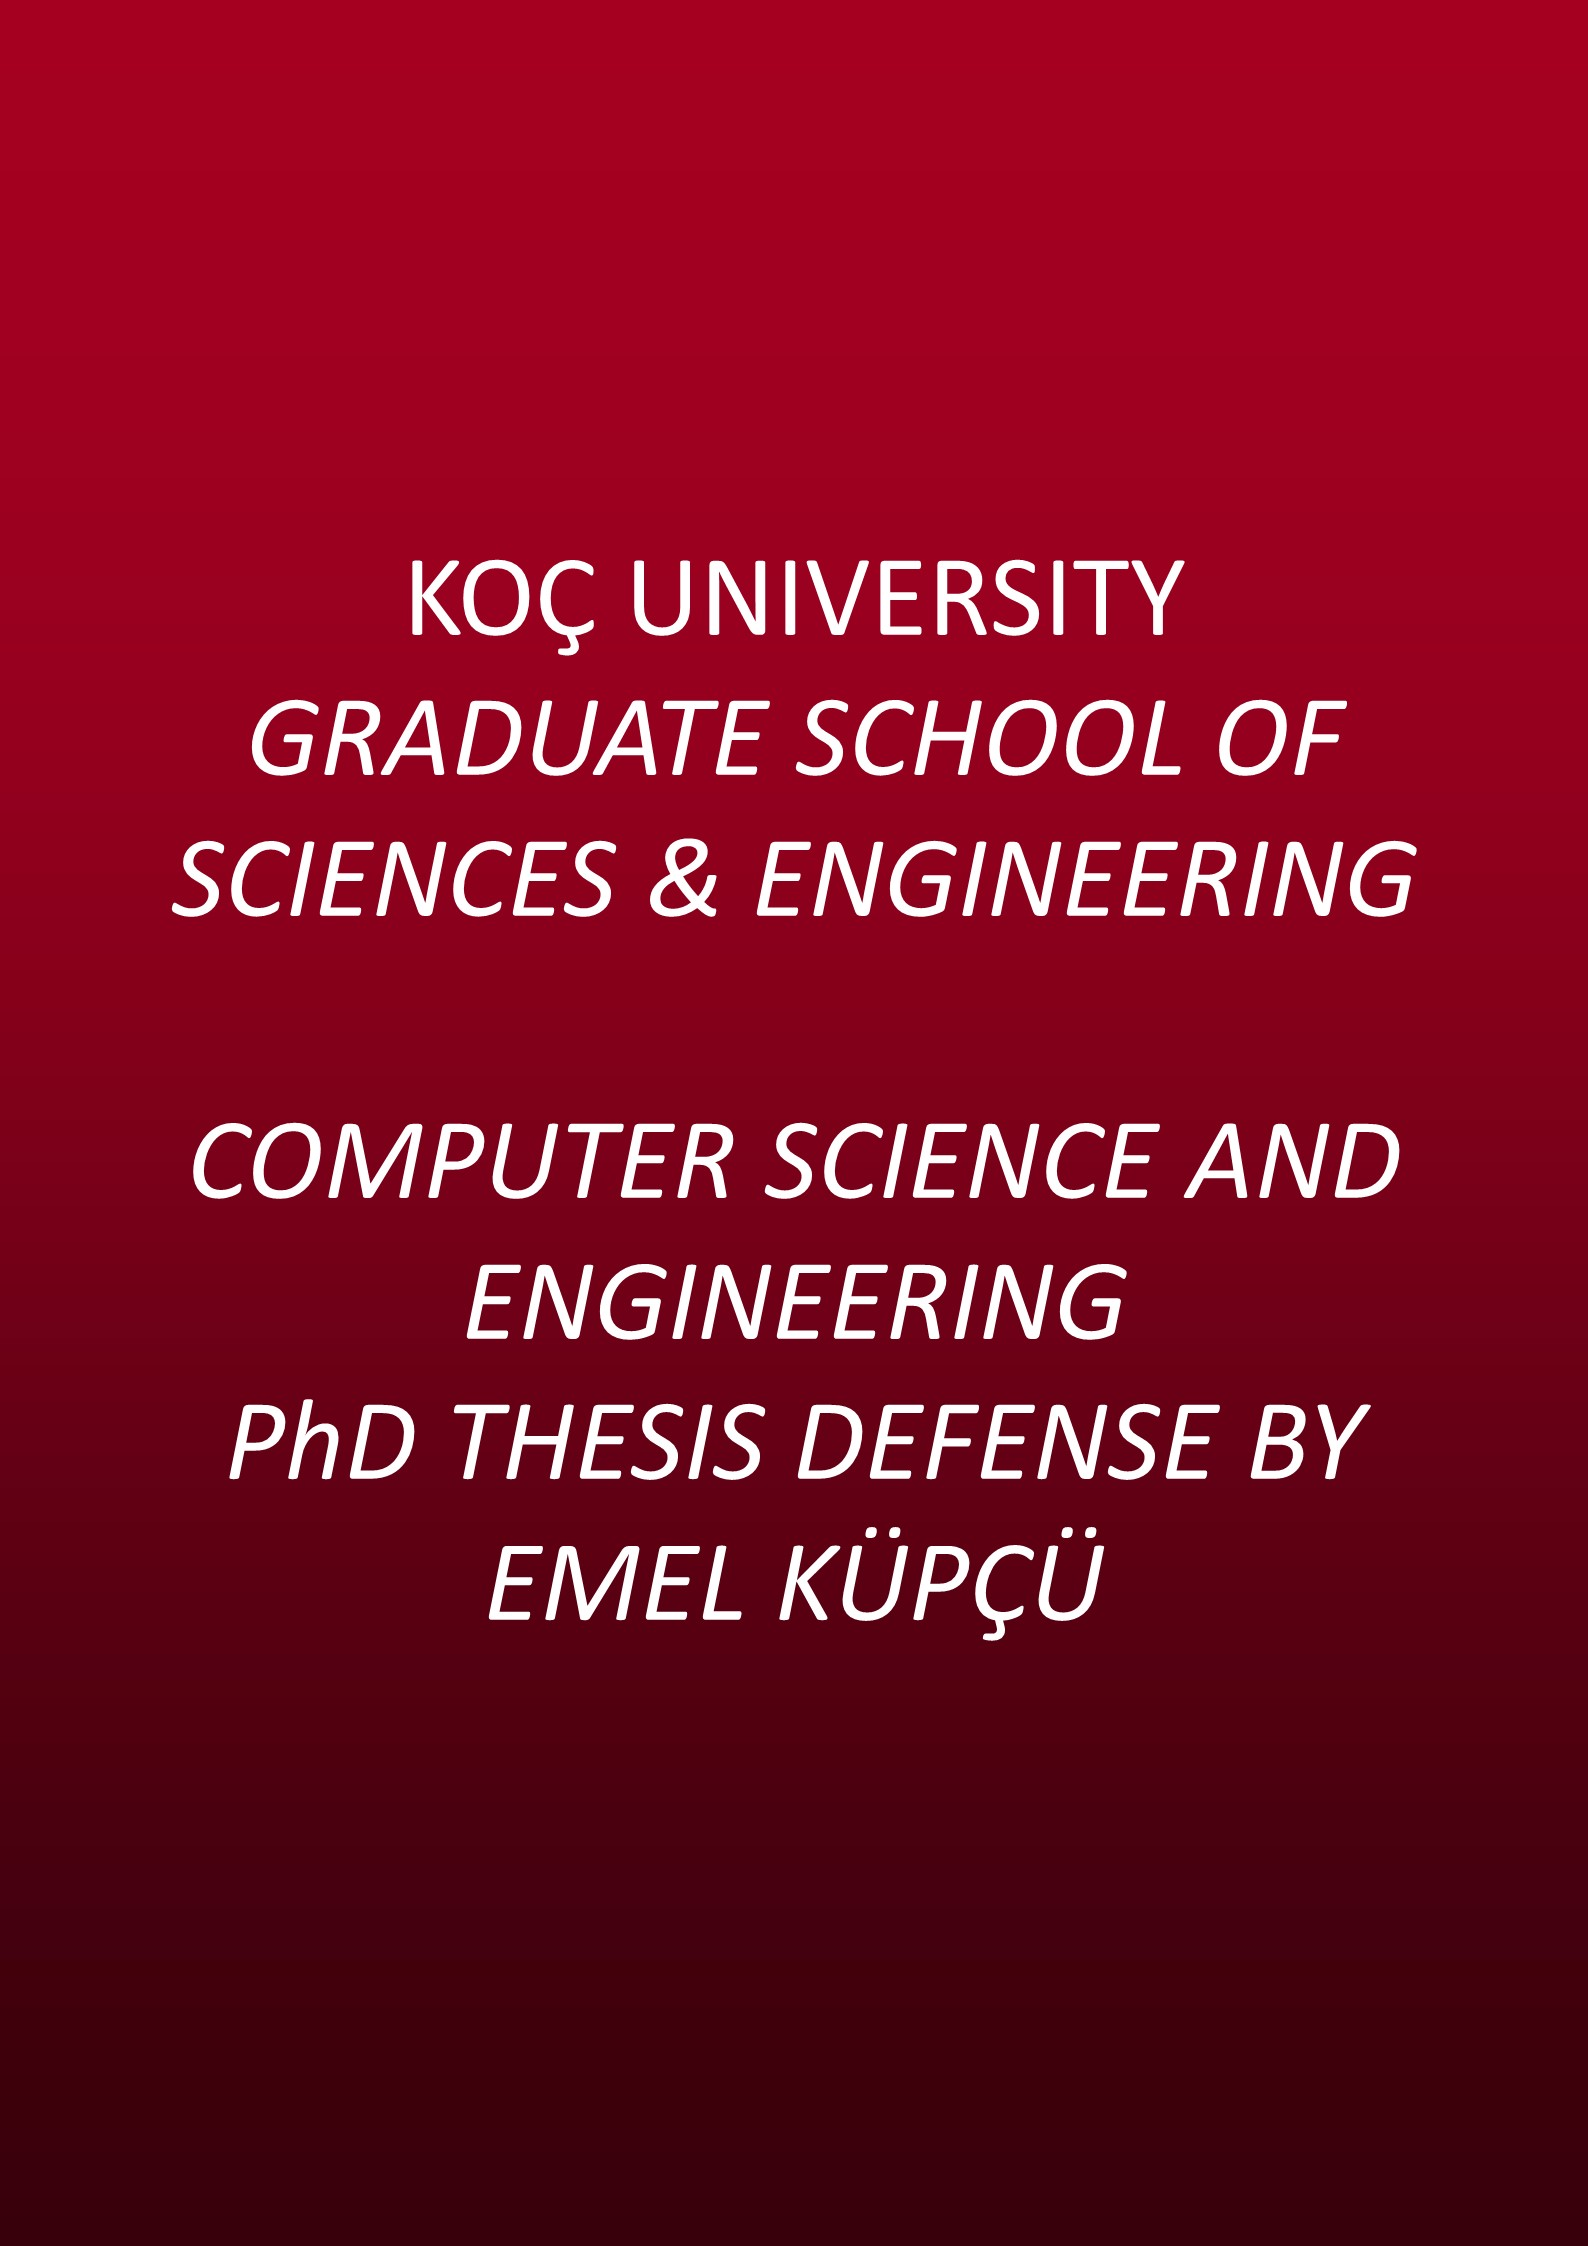 engineering phd thesis adhesion rough surfaces The department of chemical and biomolecular engineering at rice benefits greatly from its location in houston, texas, the energy capital of the world and home to the largest medical center in the world.